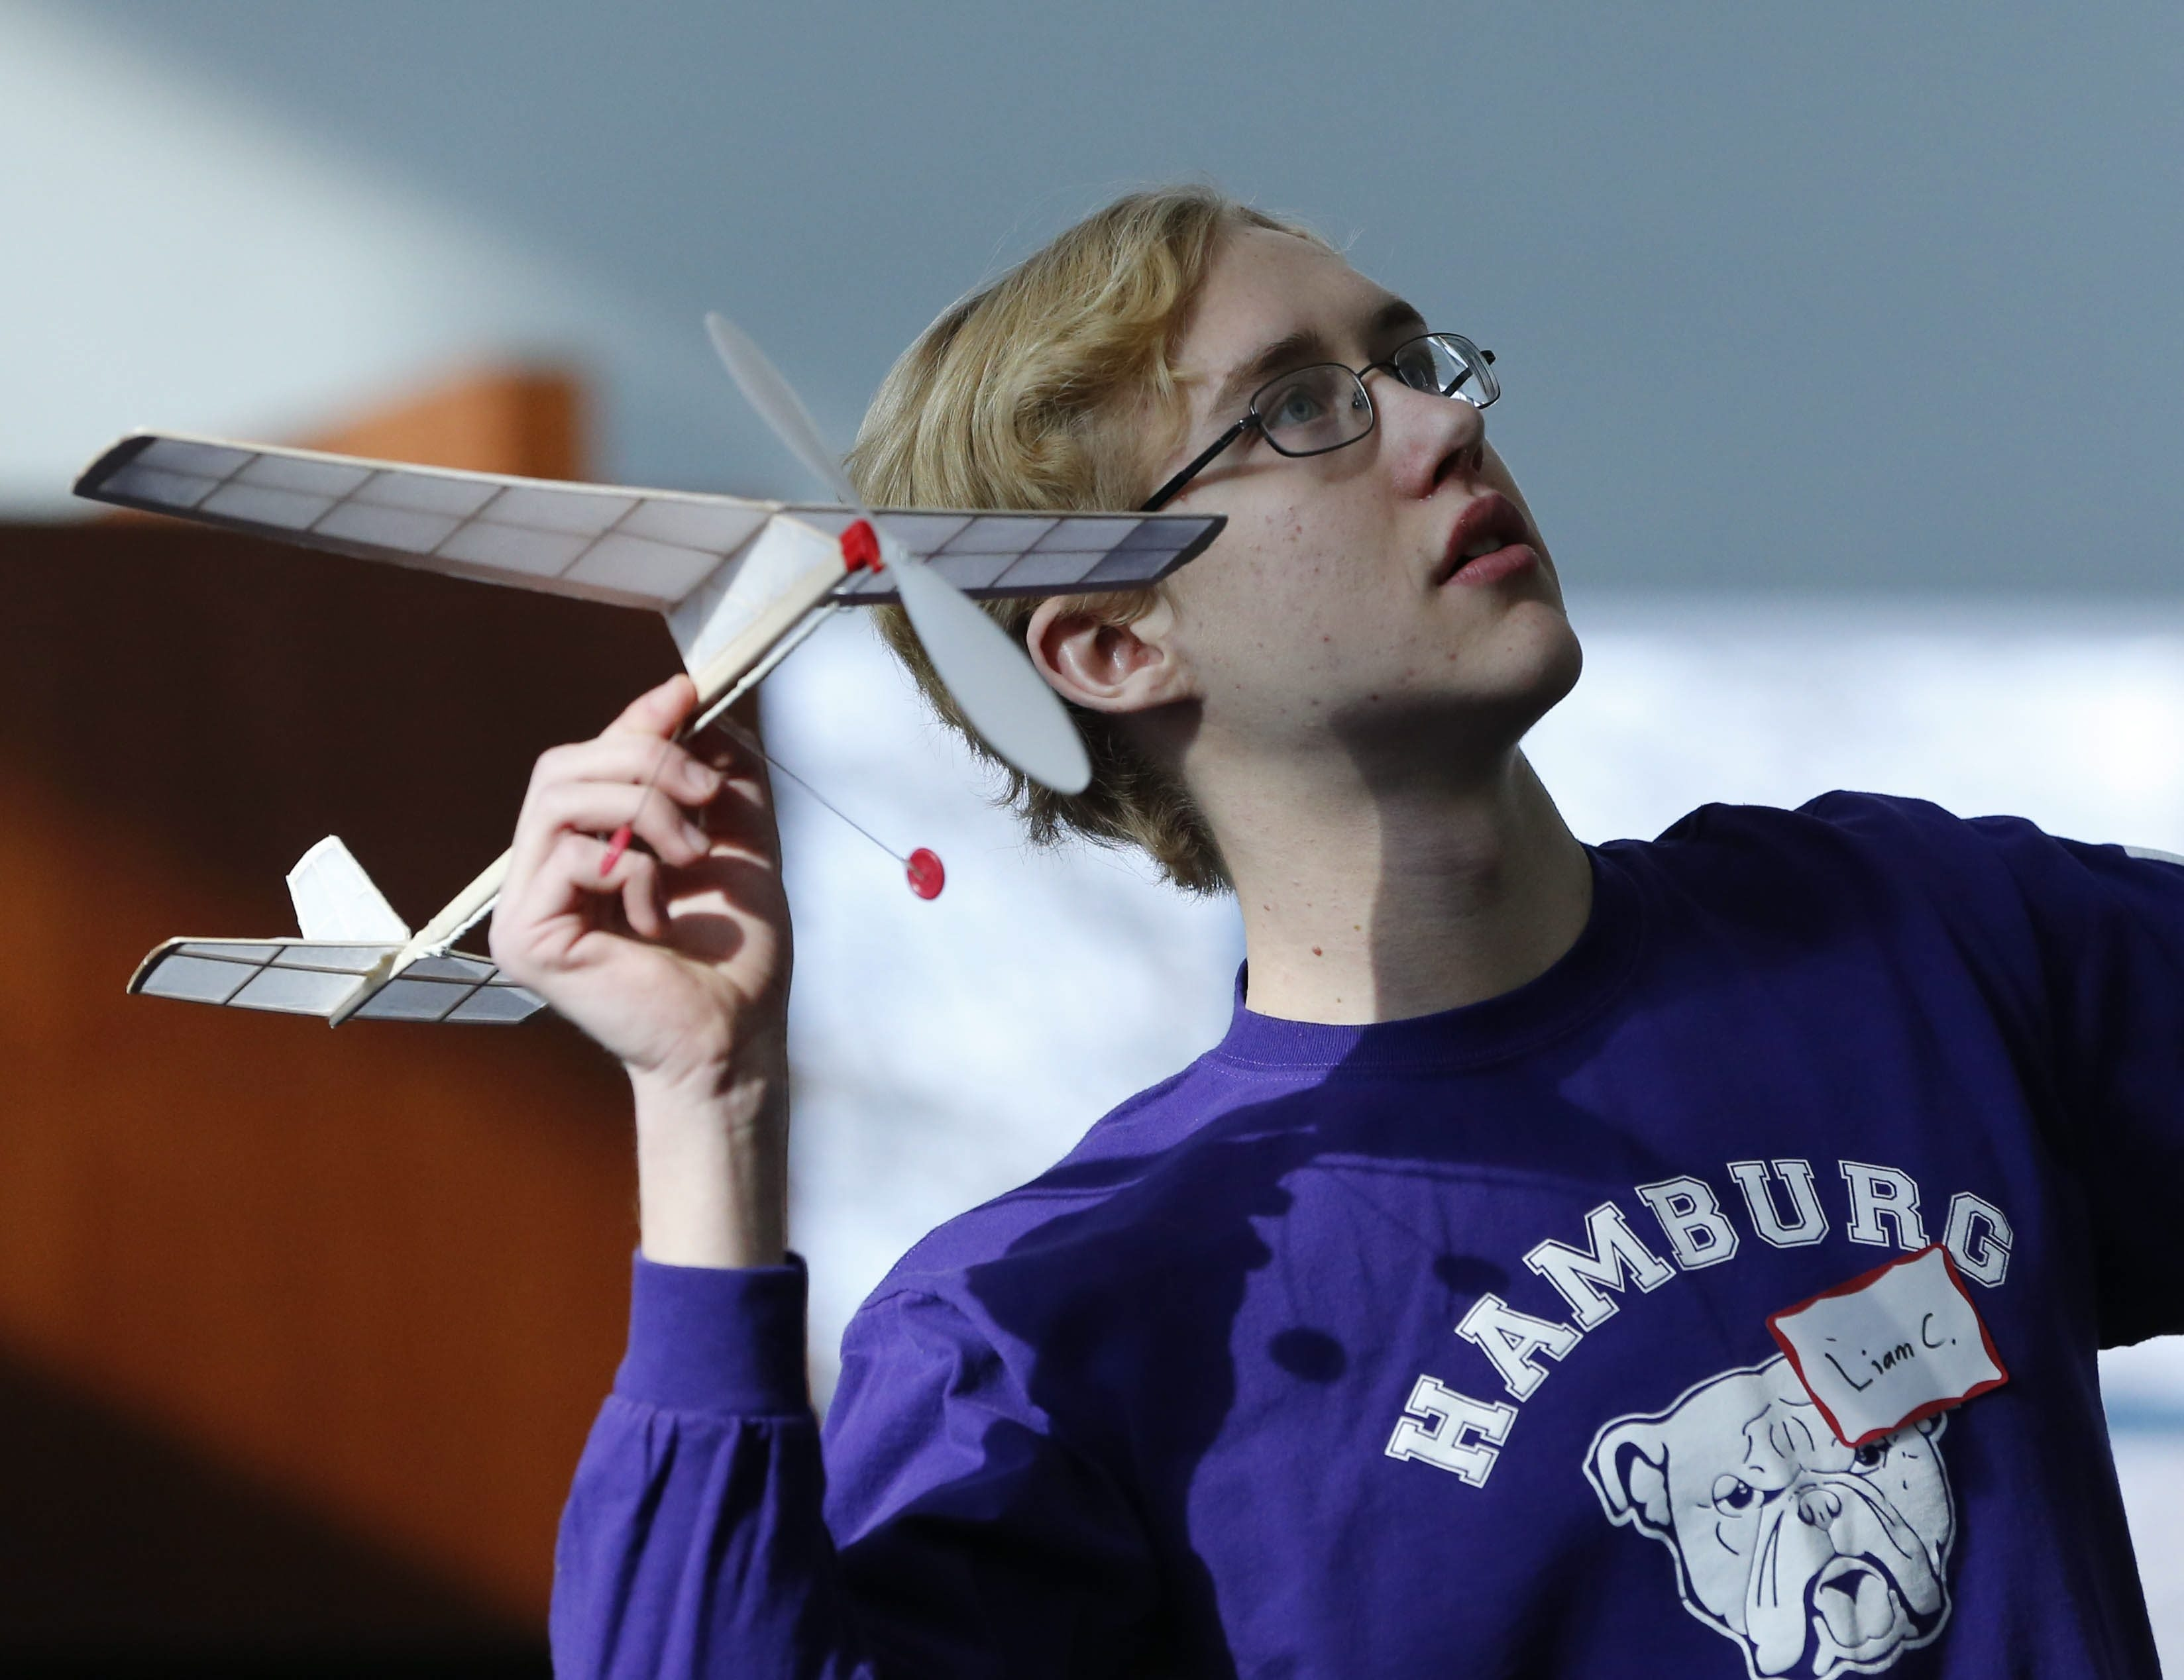 Liam Callahan, 16, of Hamburg, launches his team's entry in the model plane event during the Science Olympiad at Canisius College on Saturday. More than 600 area high school students competed in the Olympiad's 25 science-related events.